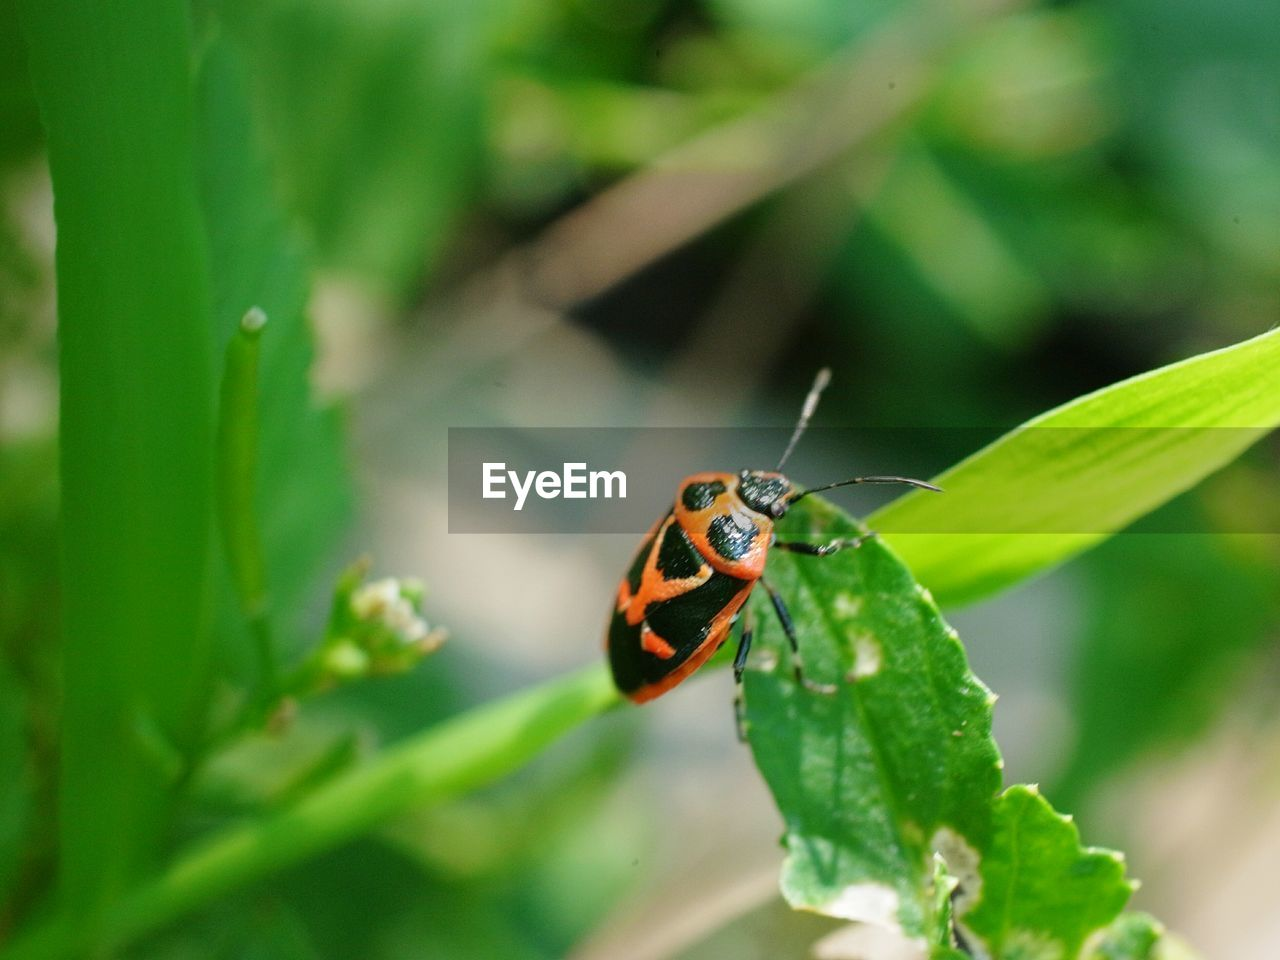 invertebrate, insect, animals in the wild, animal wildlife, animal themes, one animal, animal, plant part, green color, leaf, plant, close-up, beetle, ladybug, day, nature, growth, focus on foreground, beauty in nature, selective focus, no people, small